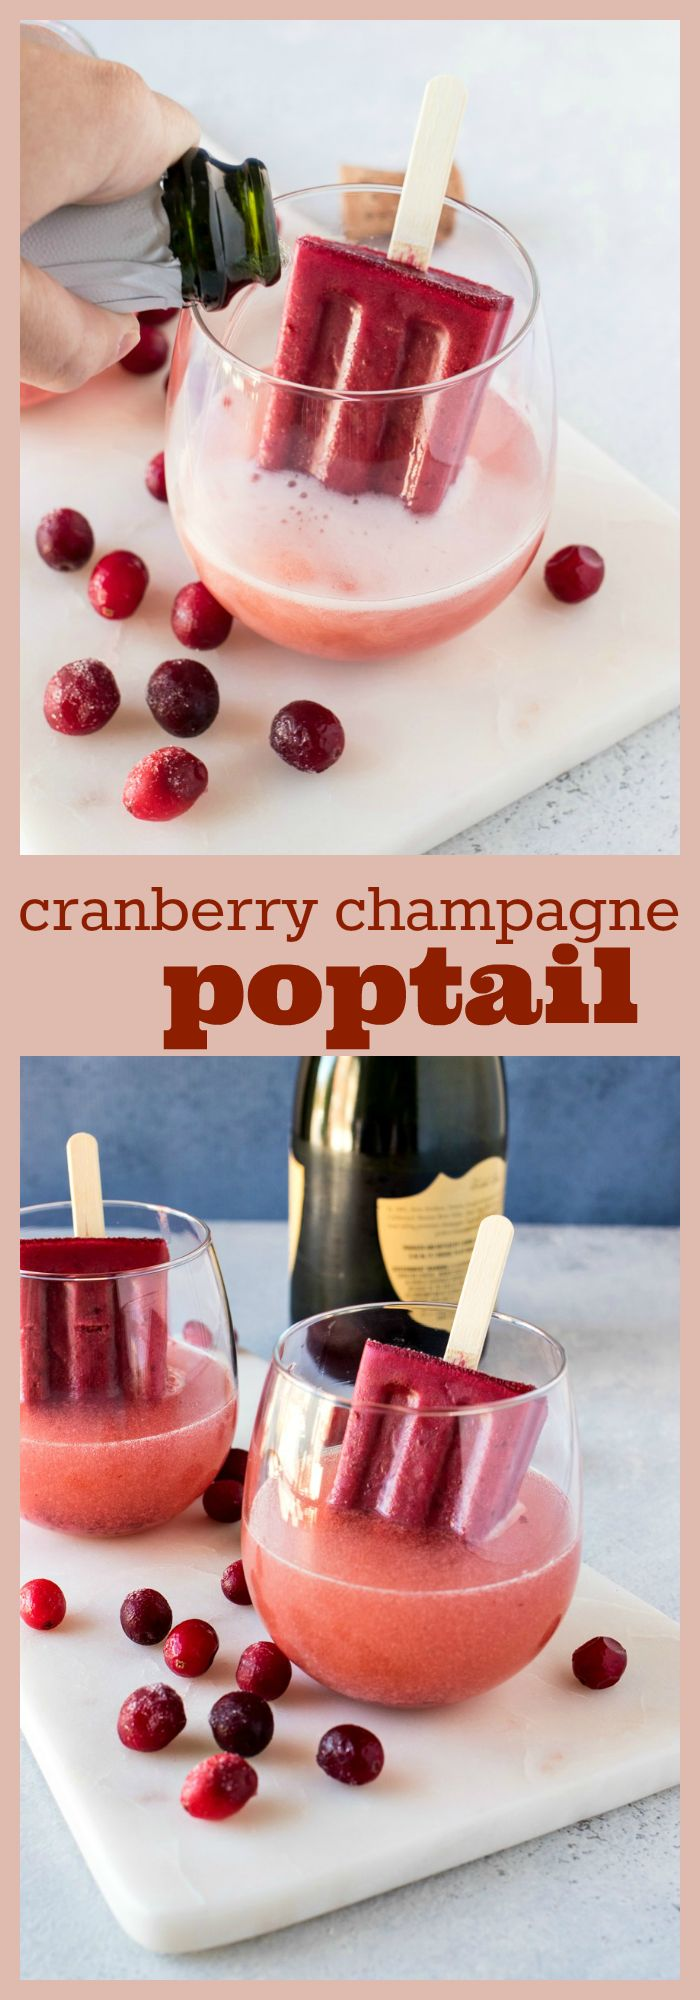 Cranberry Champagne Poptail – A homemade cranberry cherry popsicle in served in a glass with champagne. As the popsicle melts, it creates a fun sparkling cocktail suitable for any party this season! #champagne #cocktail #newyearseve #popsicles #recipe #cranberry